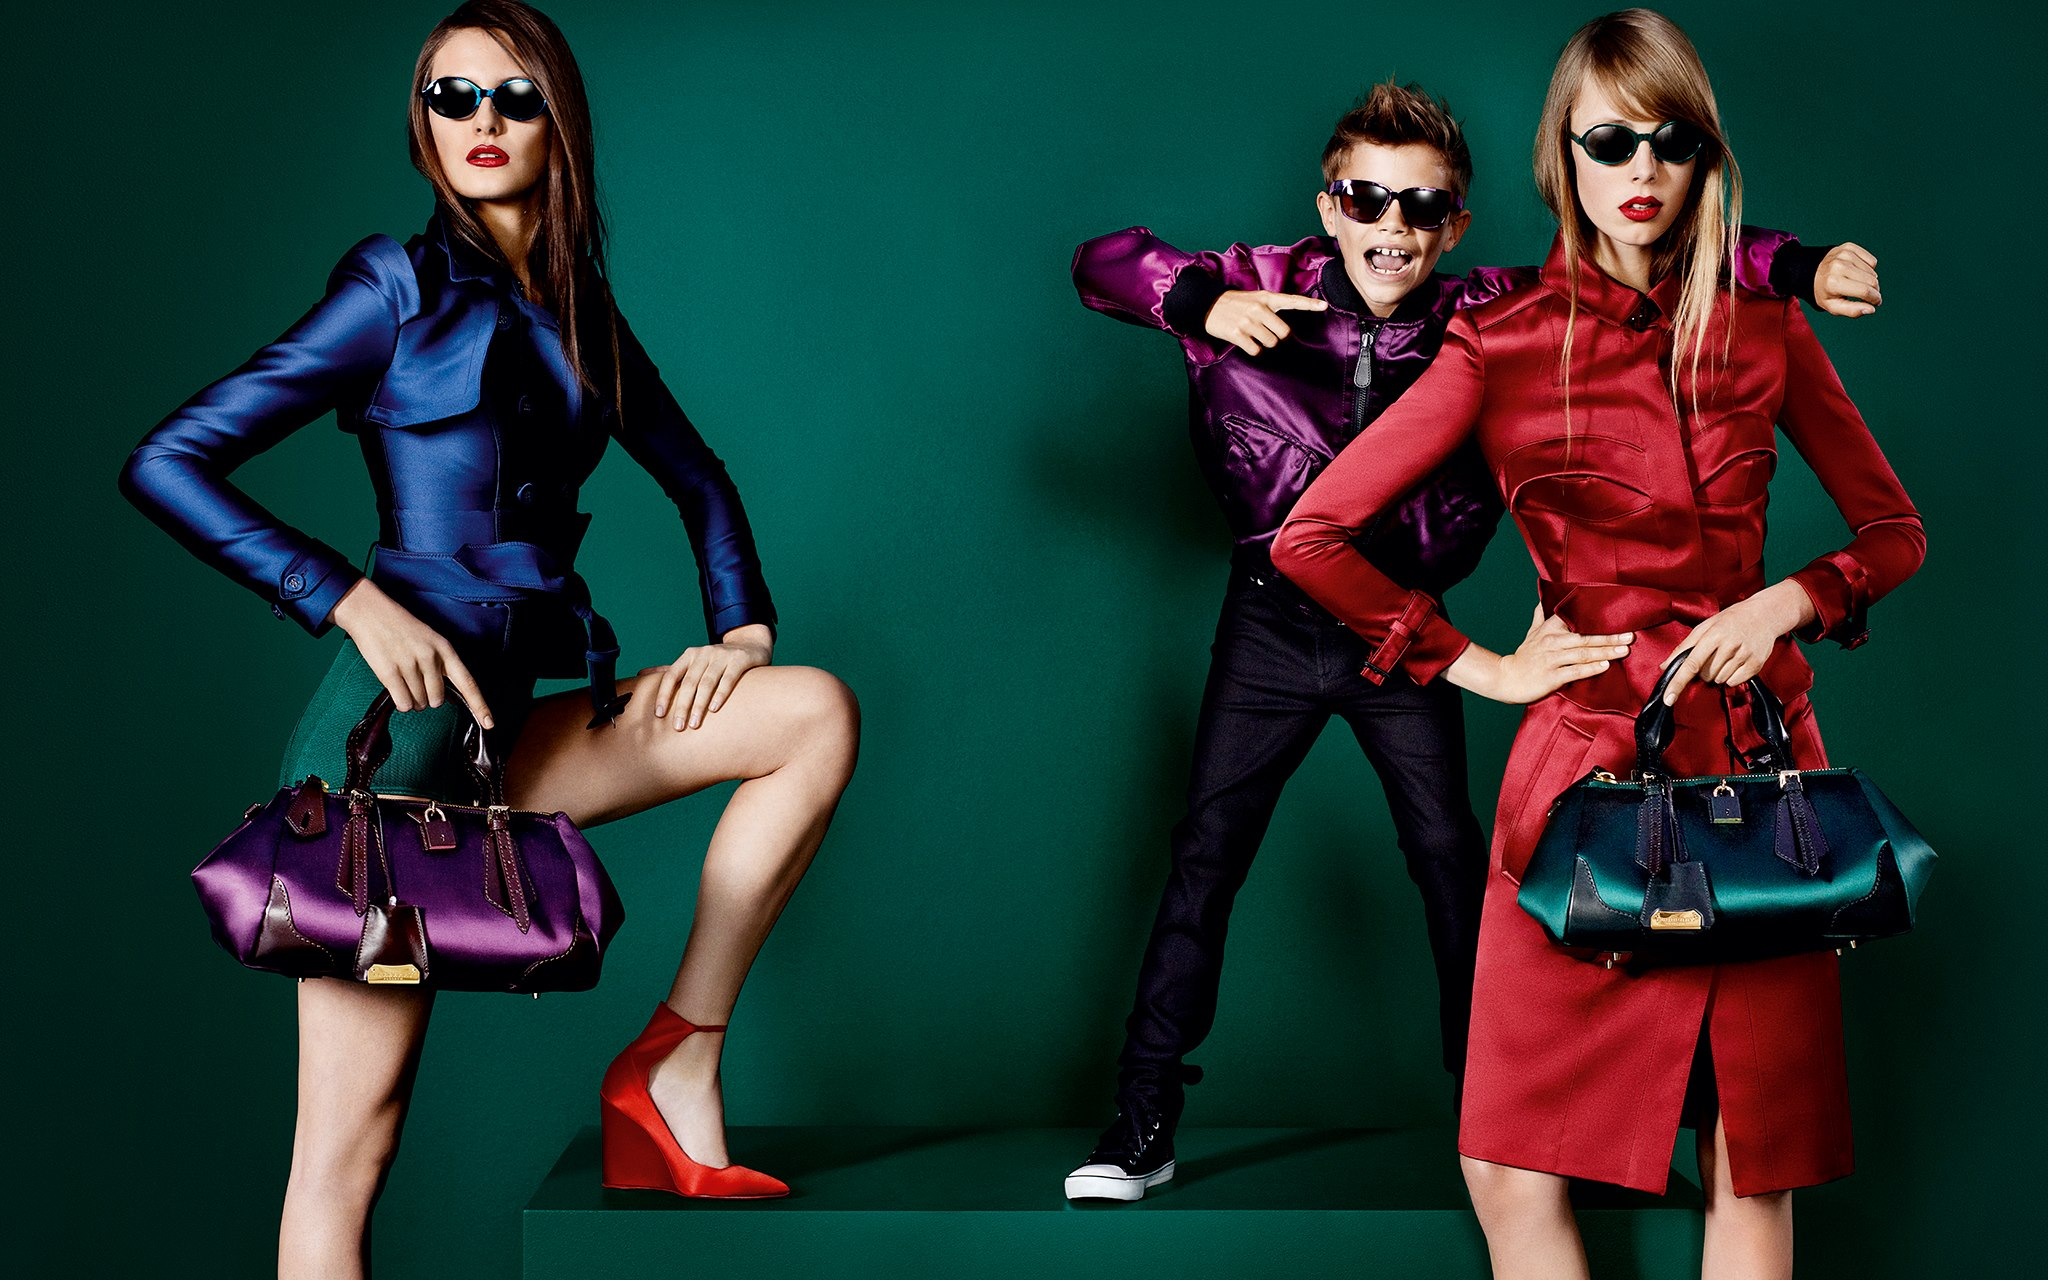 The Burberry Spring/Summer 2013 Campaign